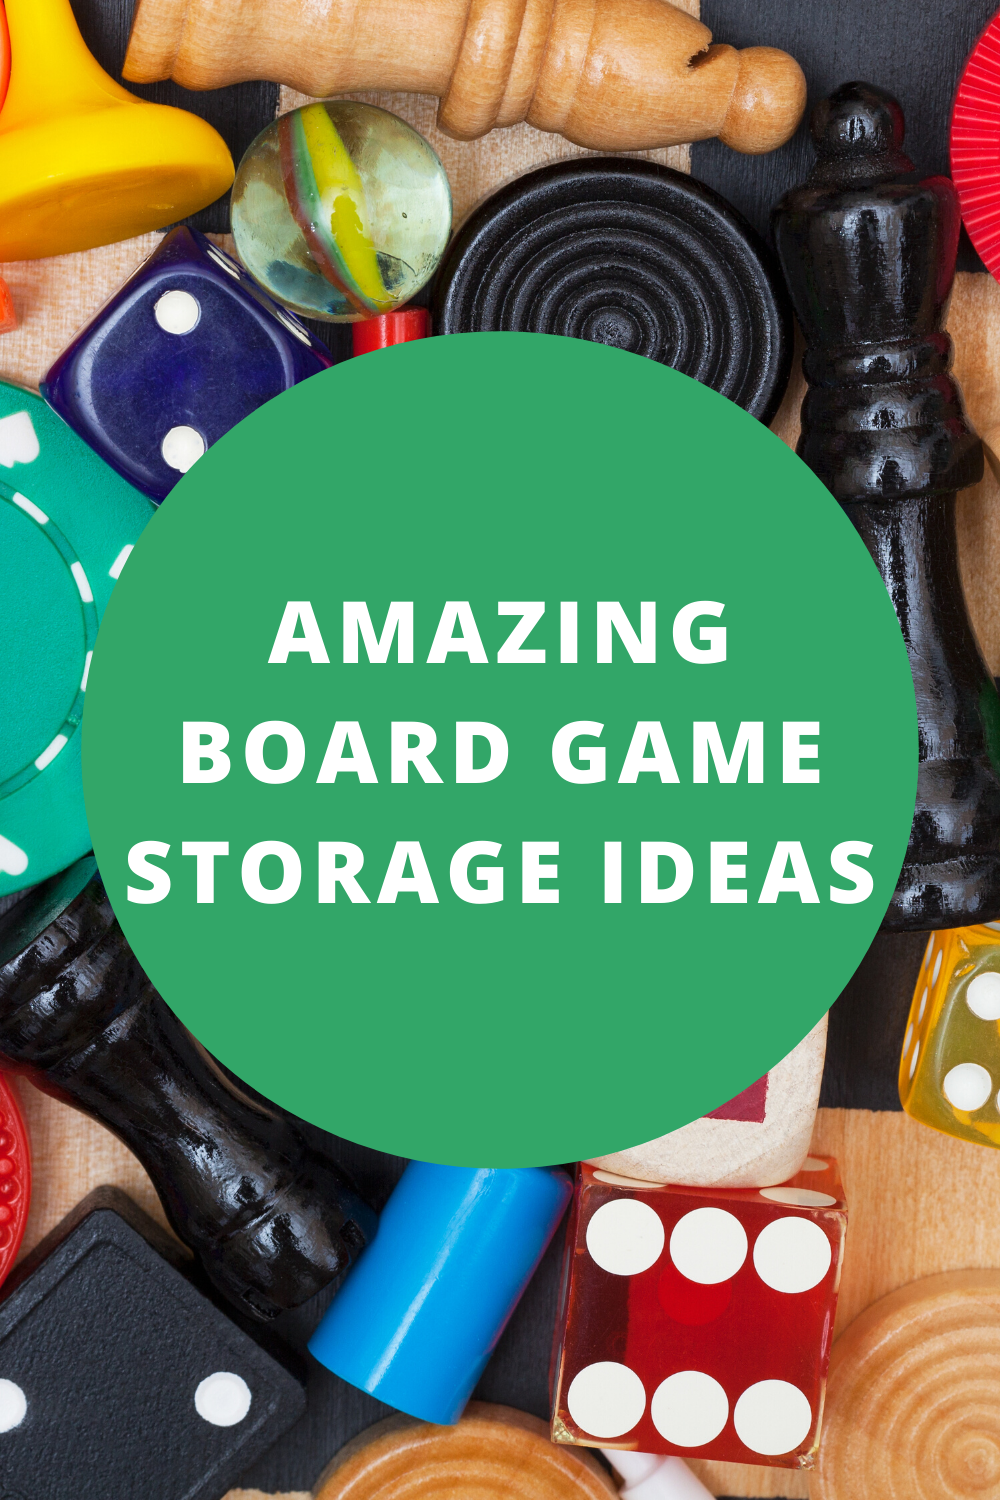 Amazing Board Game Storage Ideas